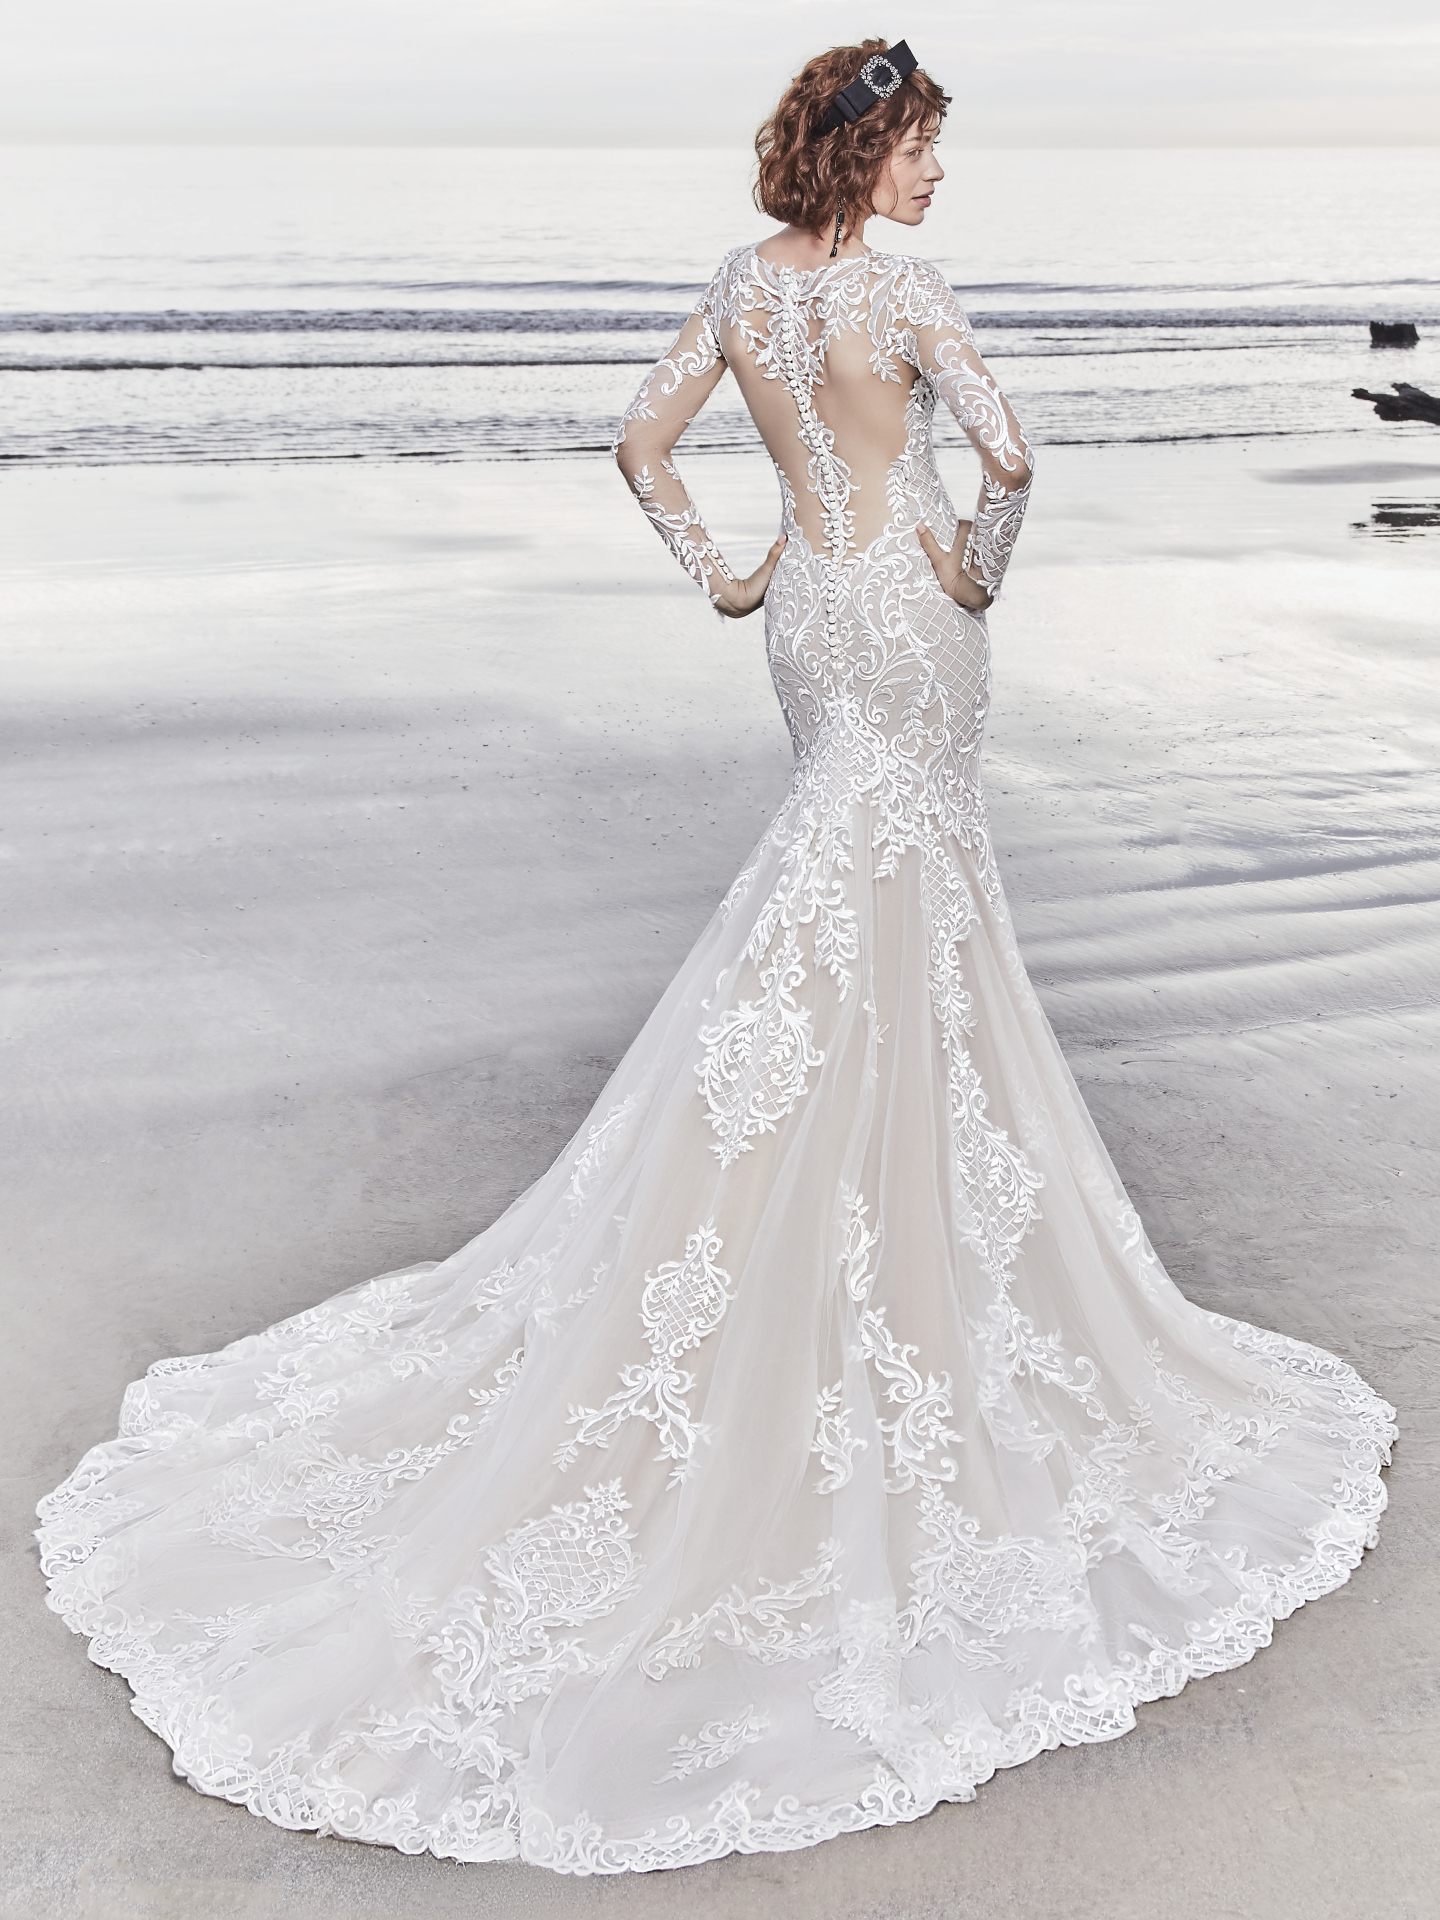 Favorite Sleeved Wedding dresses - A Sleeved Dress with a little edge Dakota by Sottero & Midgley